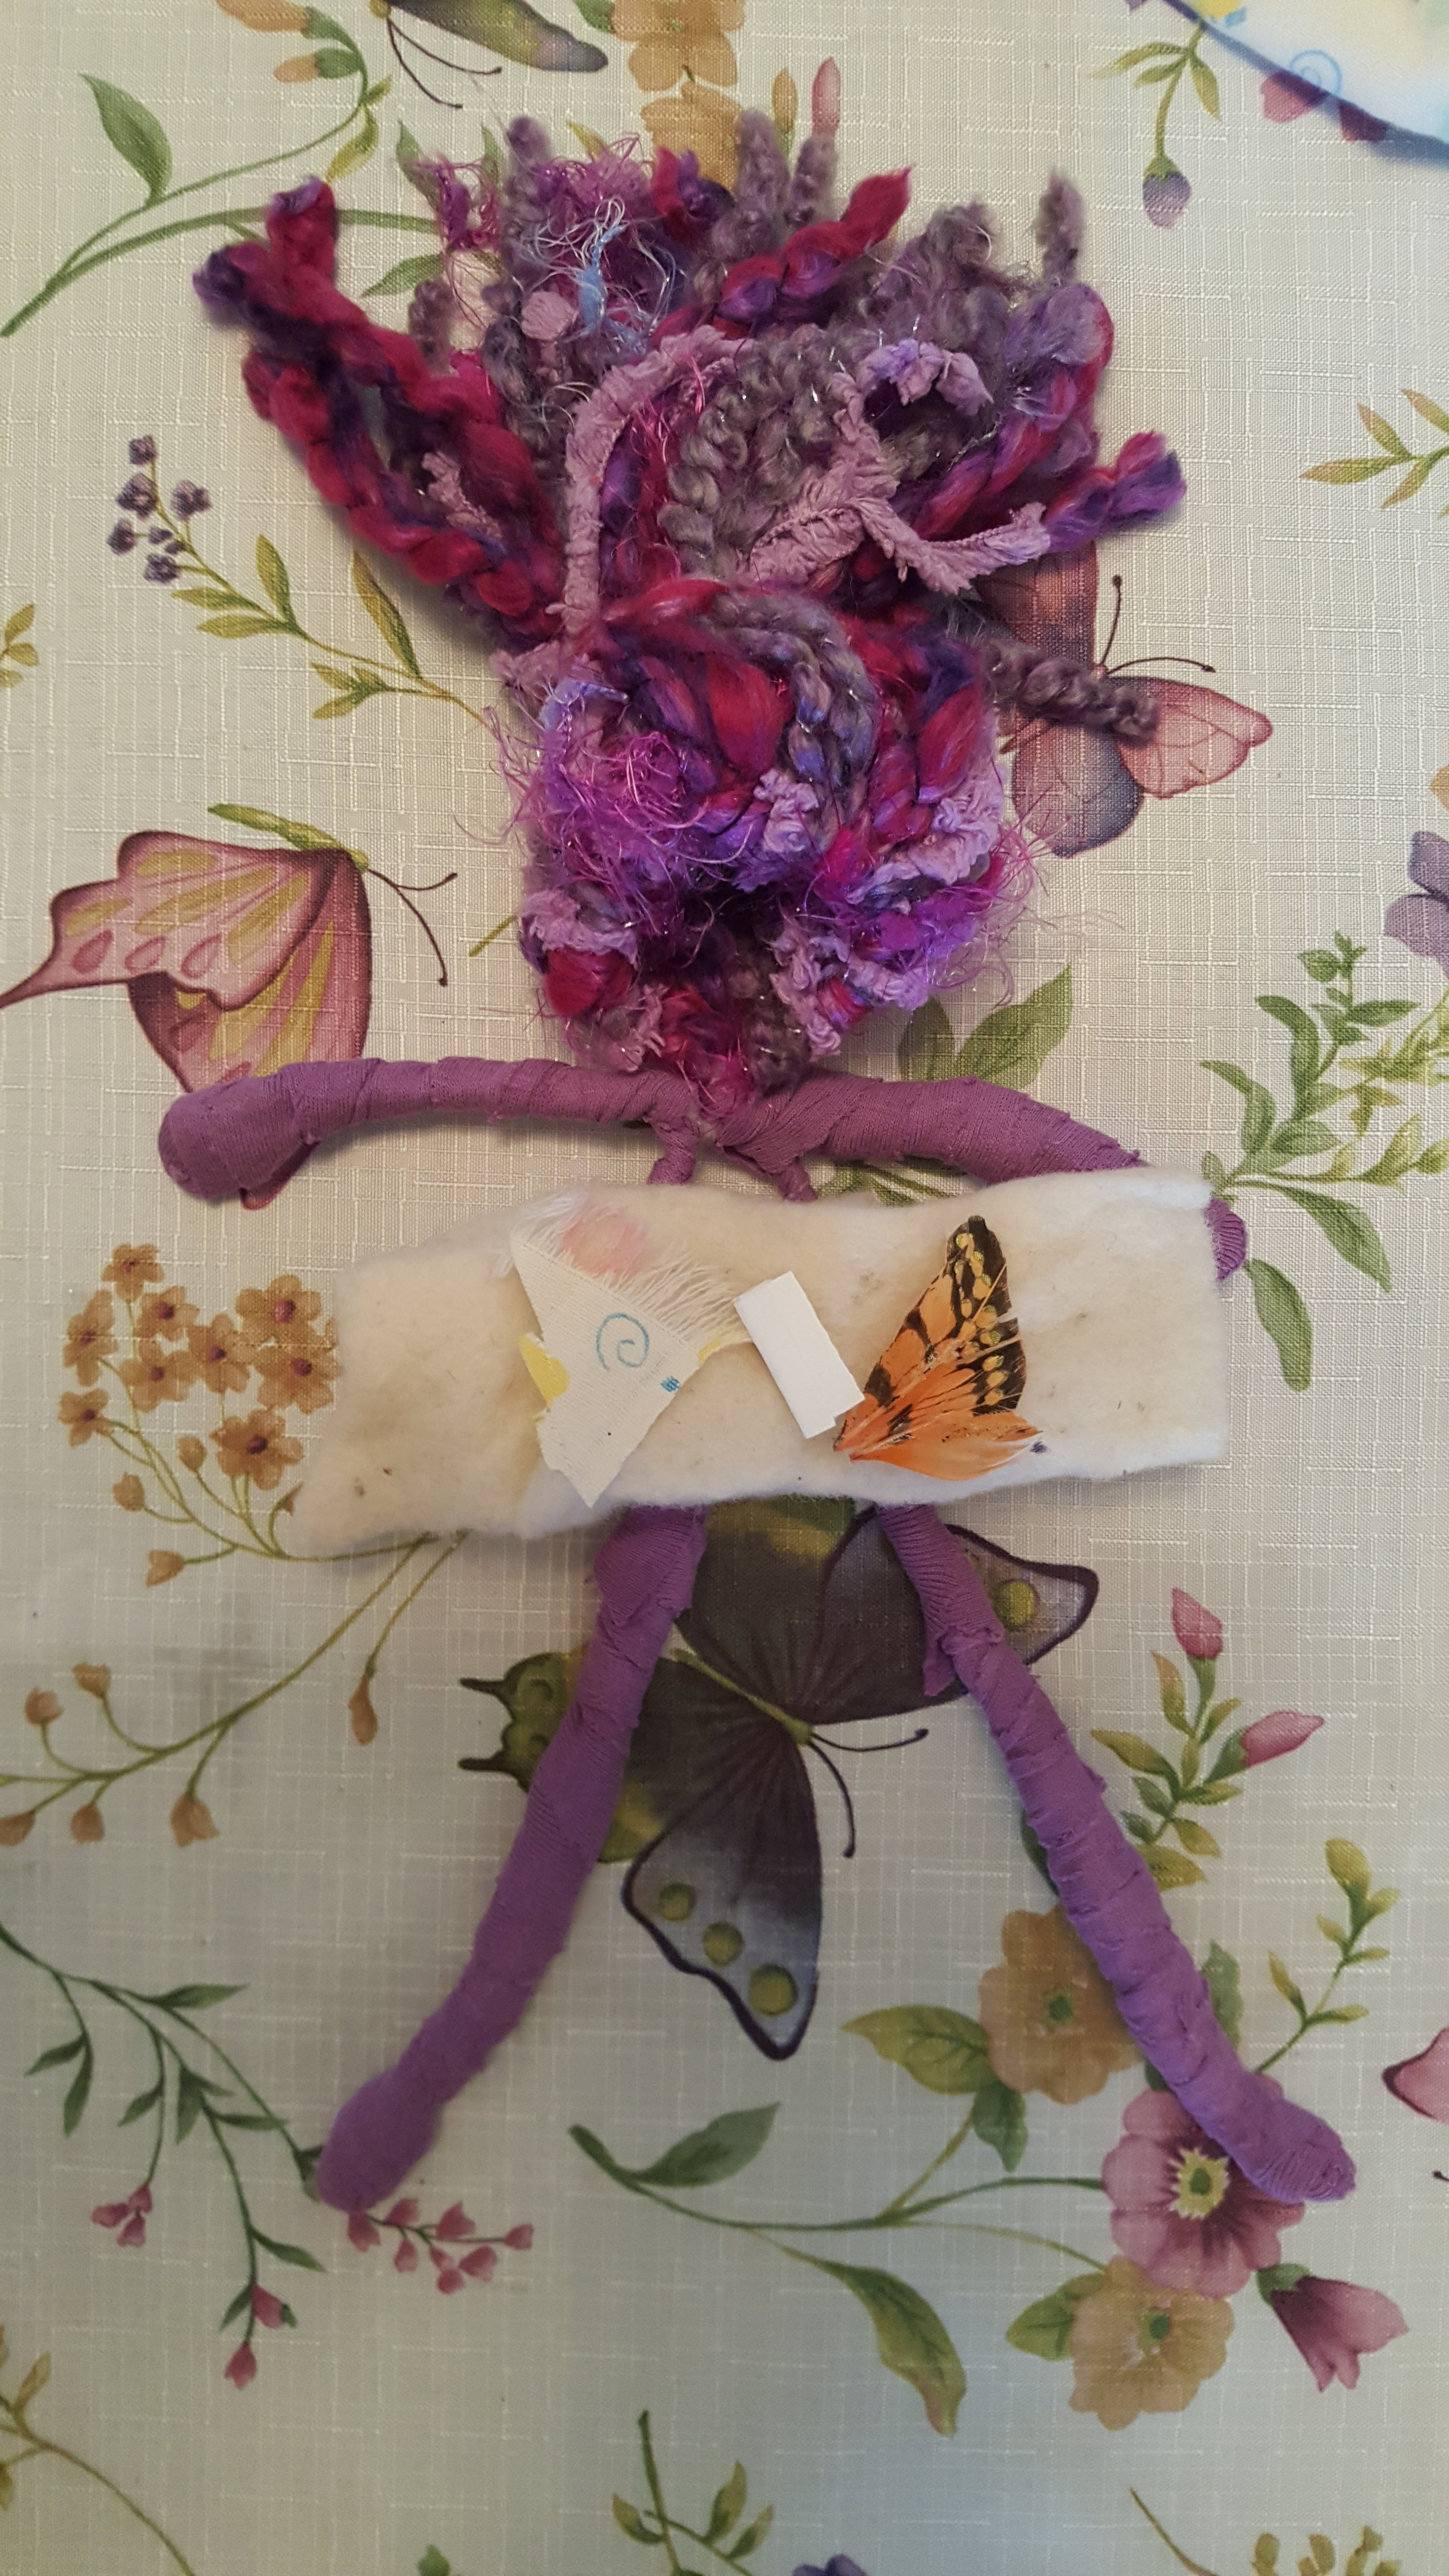 Each doll's heart is filled with small items to symbolize your special memories Julie placed inside her doll, a small piece of her grandson's baby blanket, a prayer and a wing of a butterfly which Michelle adored. -